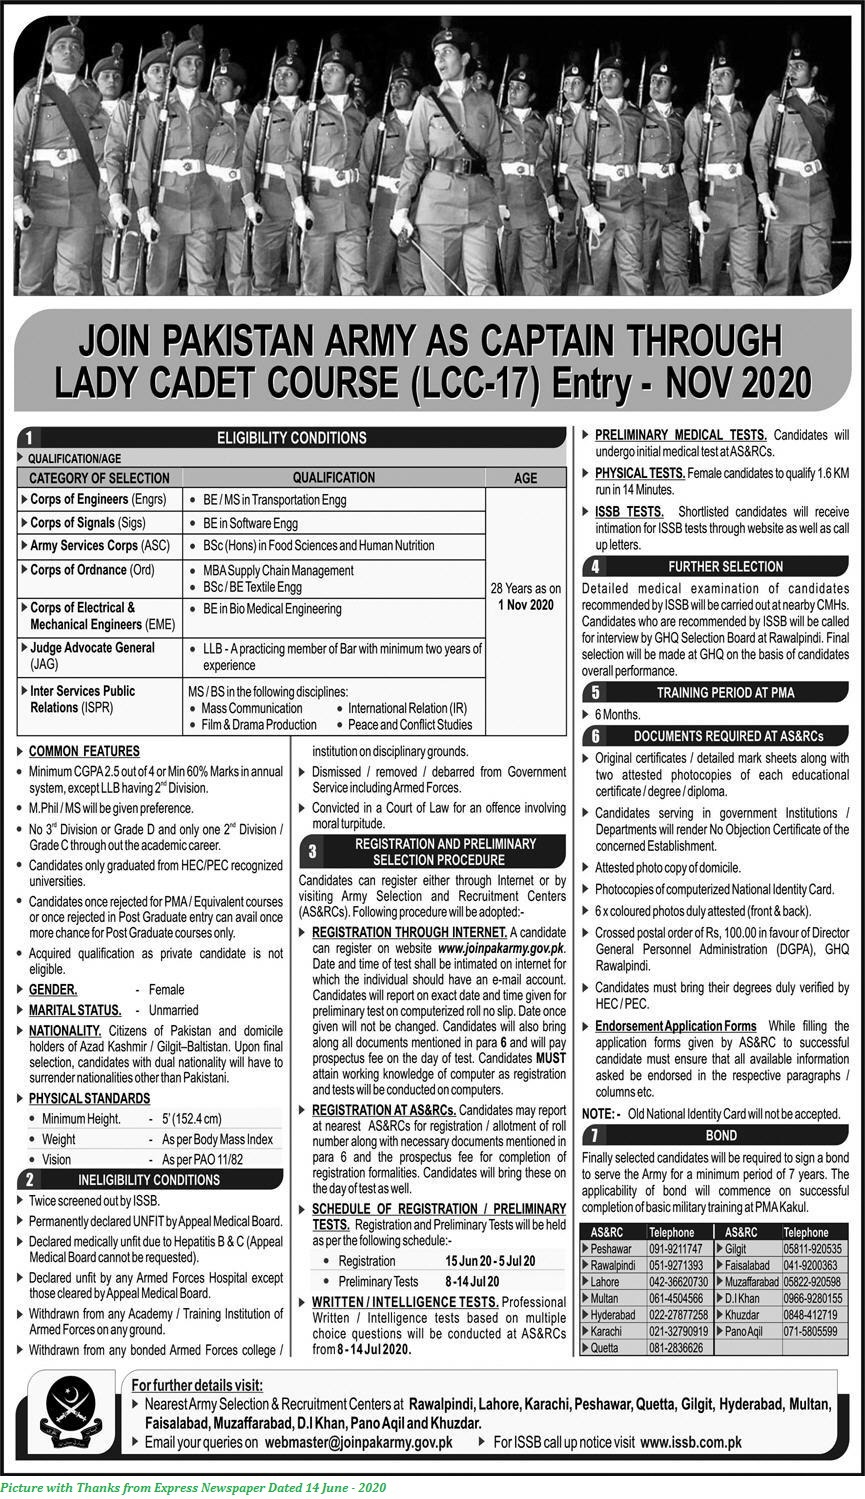 Join Pakistan Army as Captain Through Lady Cadet Course LCC-17 Entry 2020 - www.joinpakarmy.gov.pk Apply Online